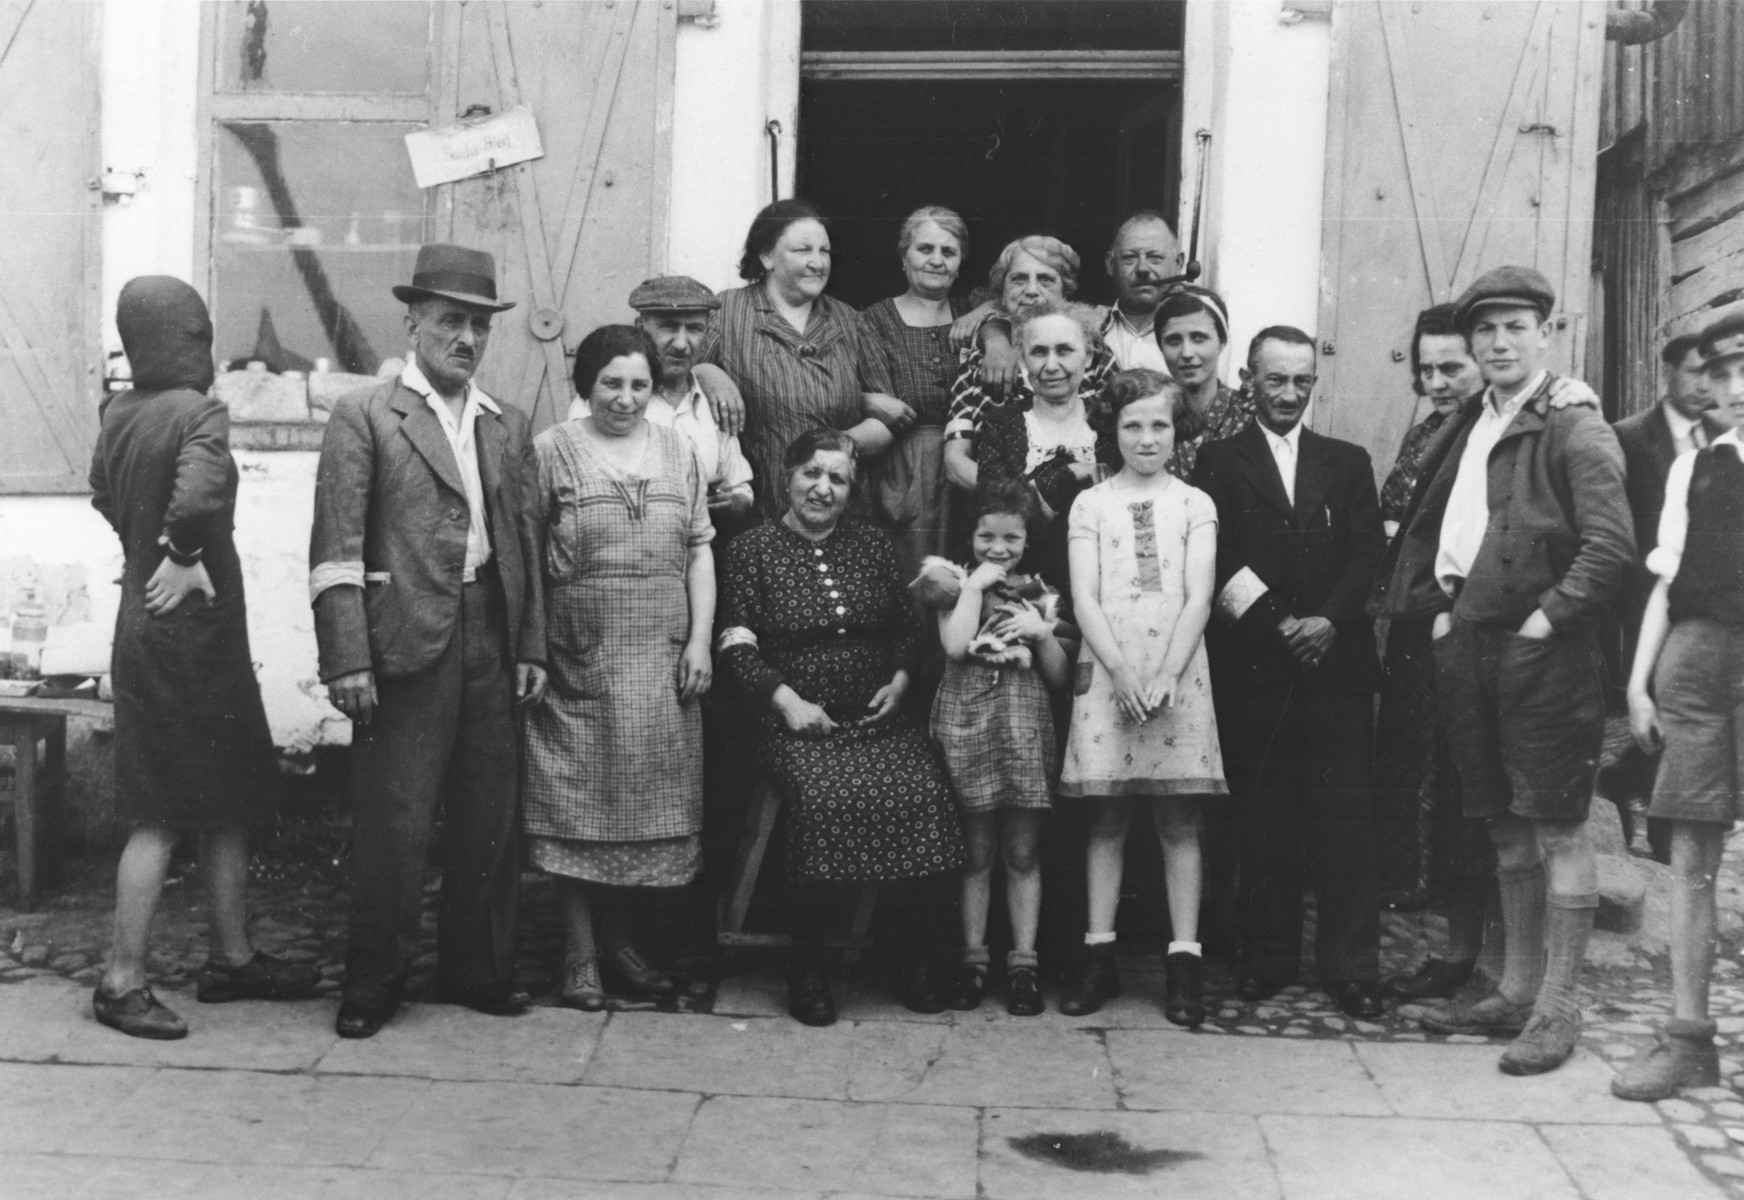 Group portrait of Jewish men, women and children on a street in the Opole Lubelskie ghetto.  Among those pictured is Wilhelm Schischa (front row wearing an armband, beside the girl in the light dress) and Johanna Schischa (center, behind the two girls in the front row).